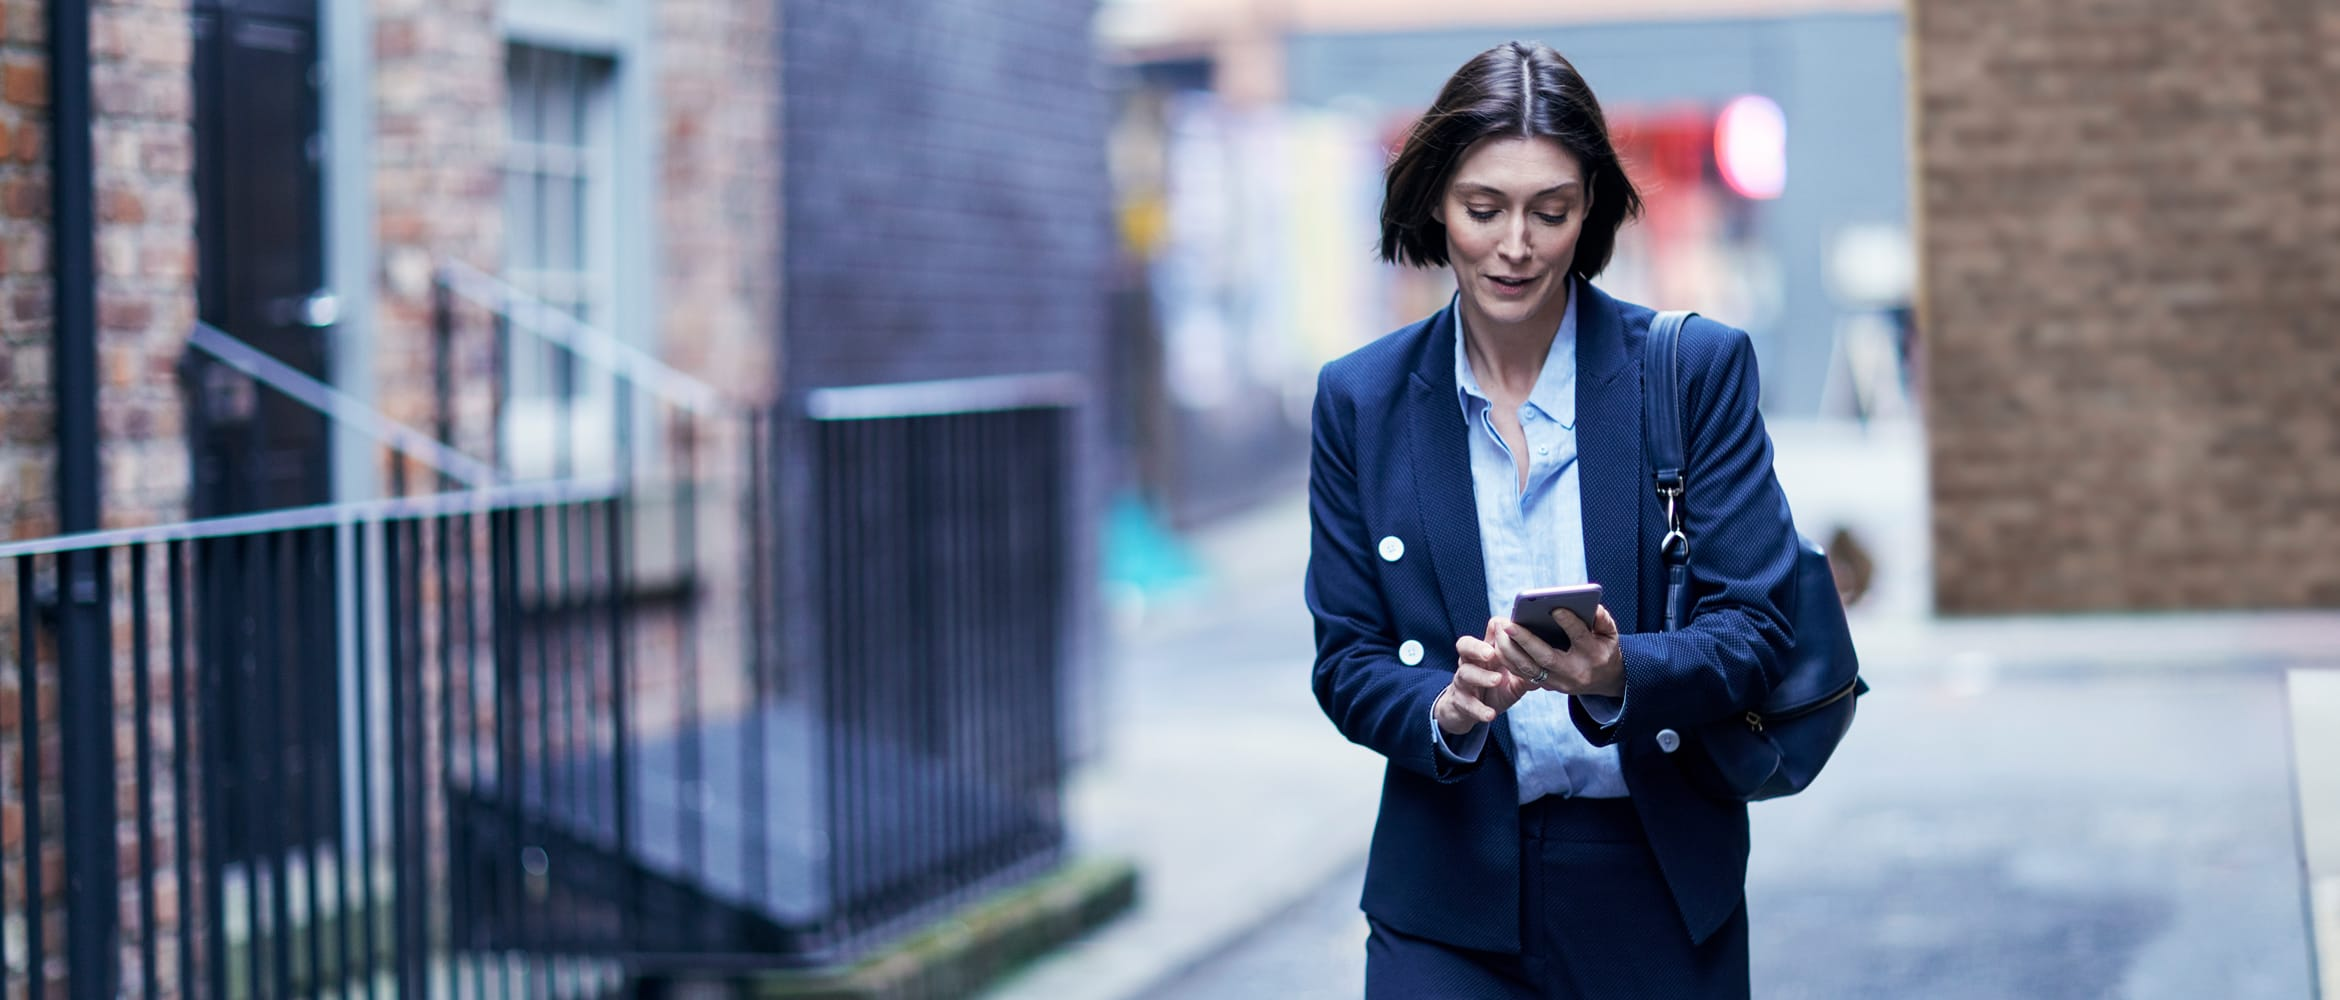 A woman looking at her smartphone while walking down a street